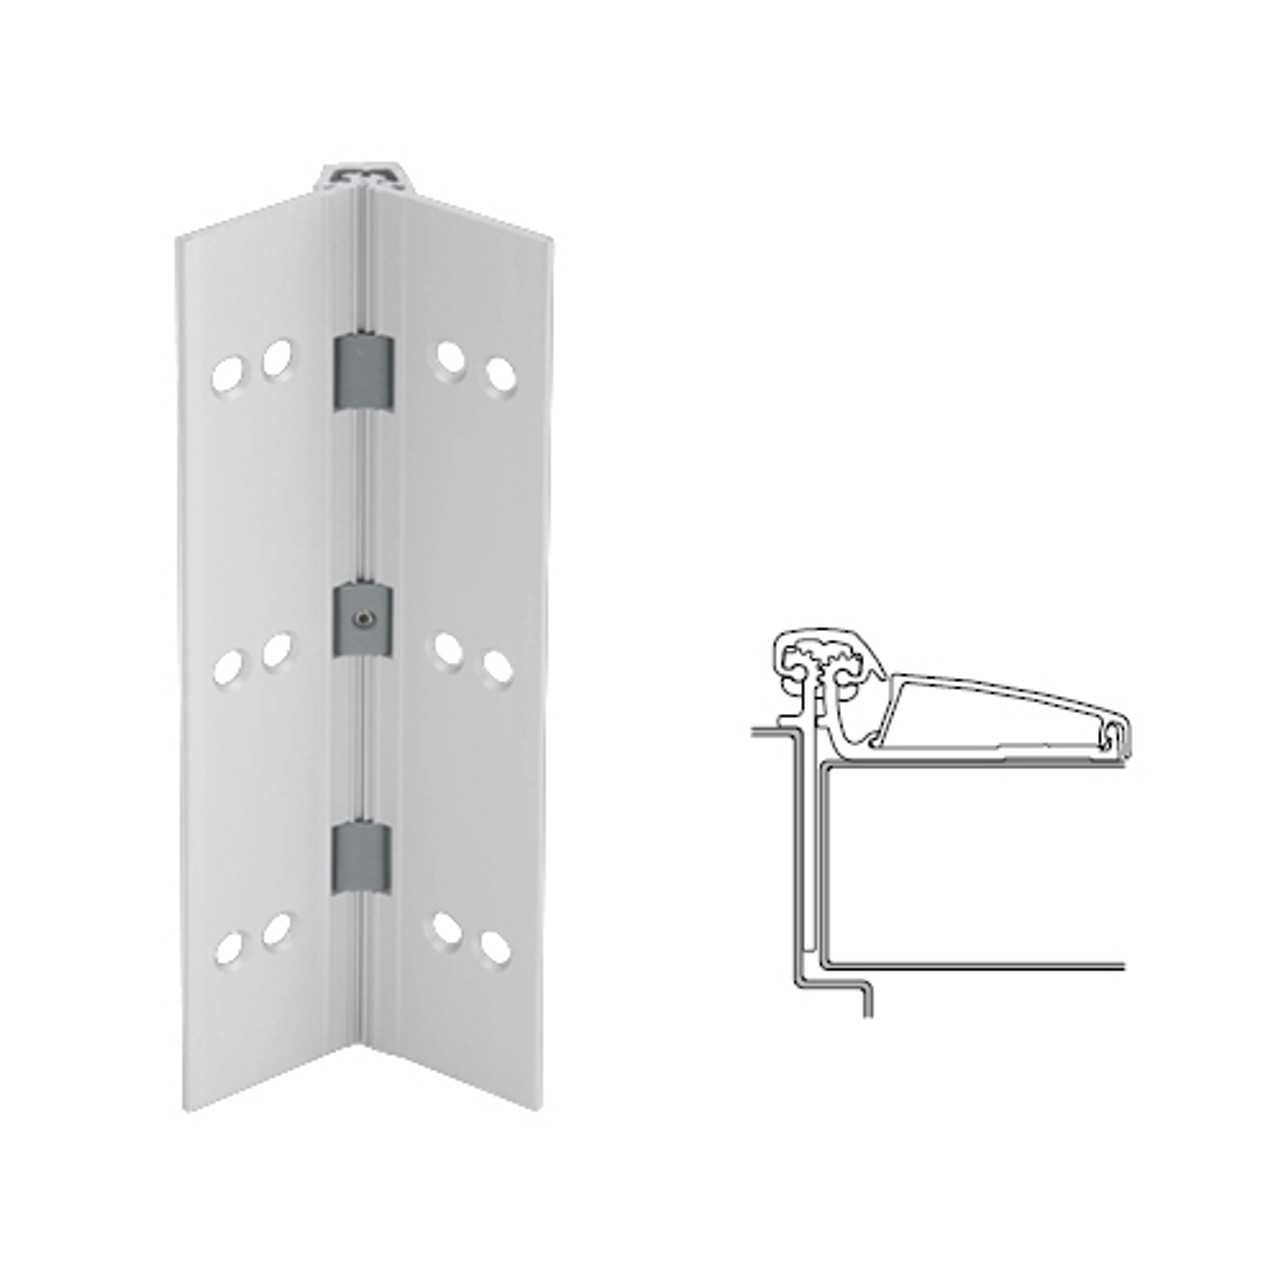 046XY-US28-95-WD IVES Adjustable Half Surface Continuous Geared Hinges with Wood Screws in Satin Aluminum